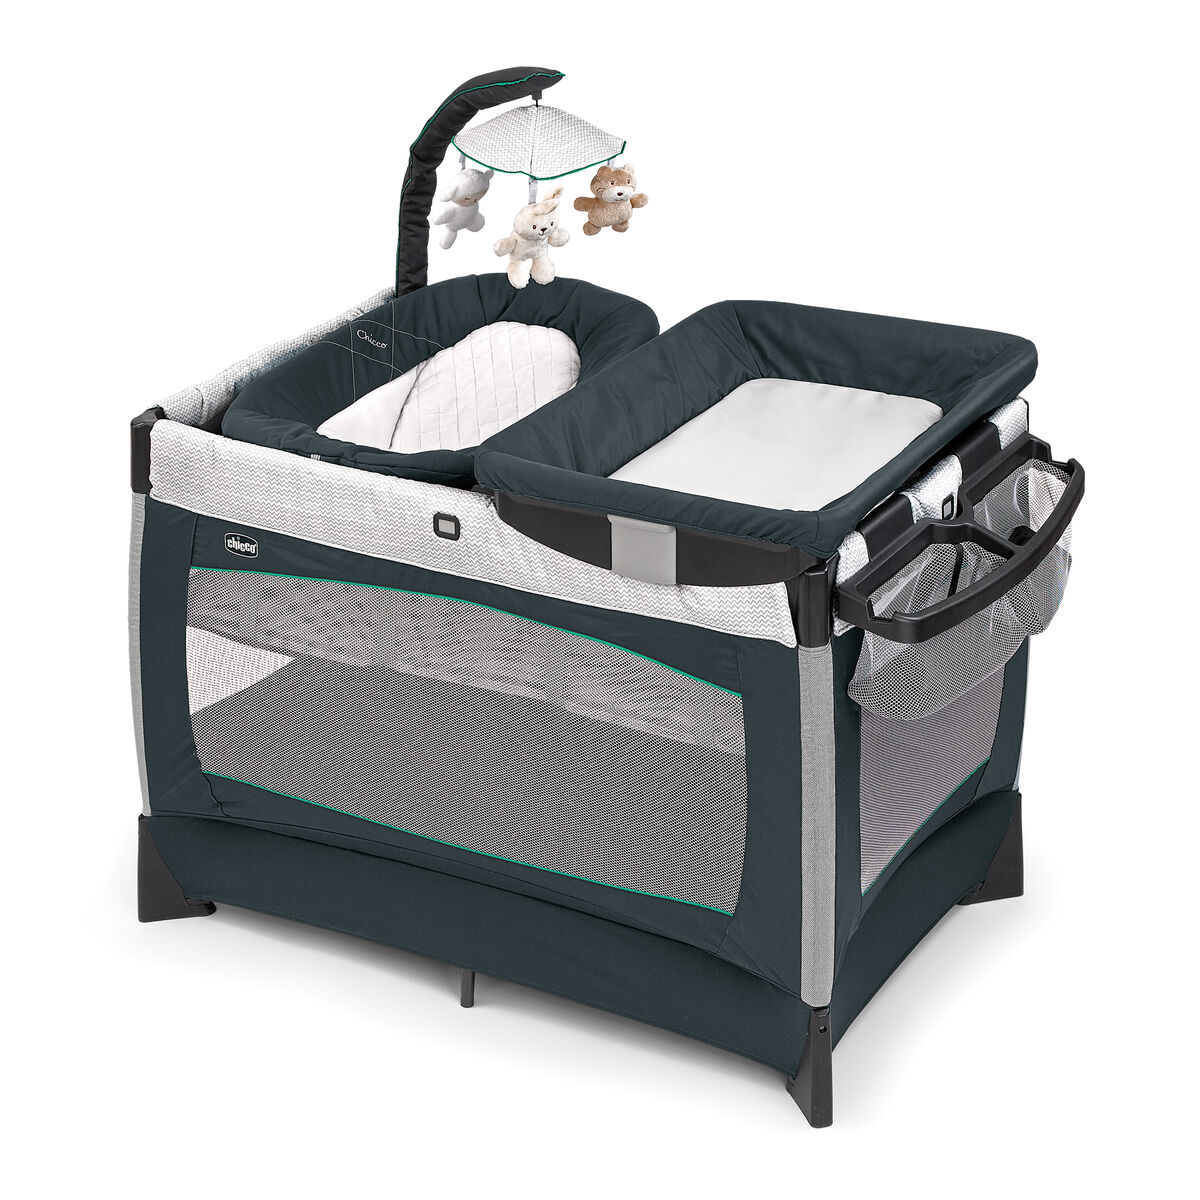 Lullaby Baby Playard - EmpireLullaby Baby Playard - Empire